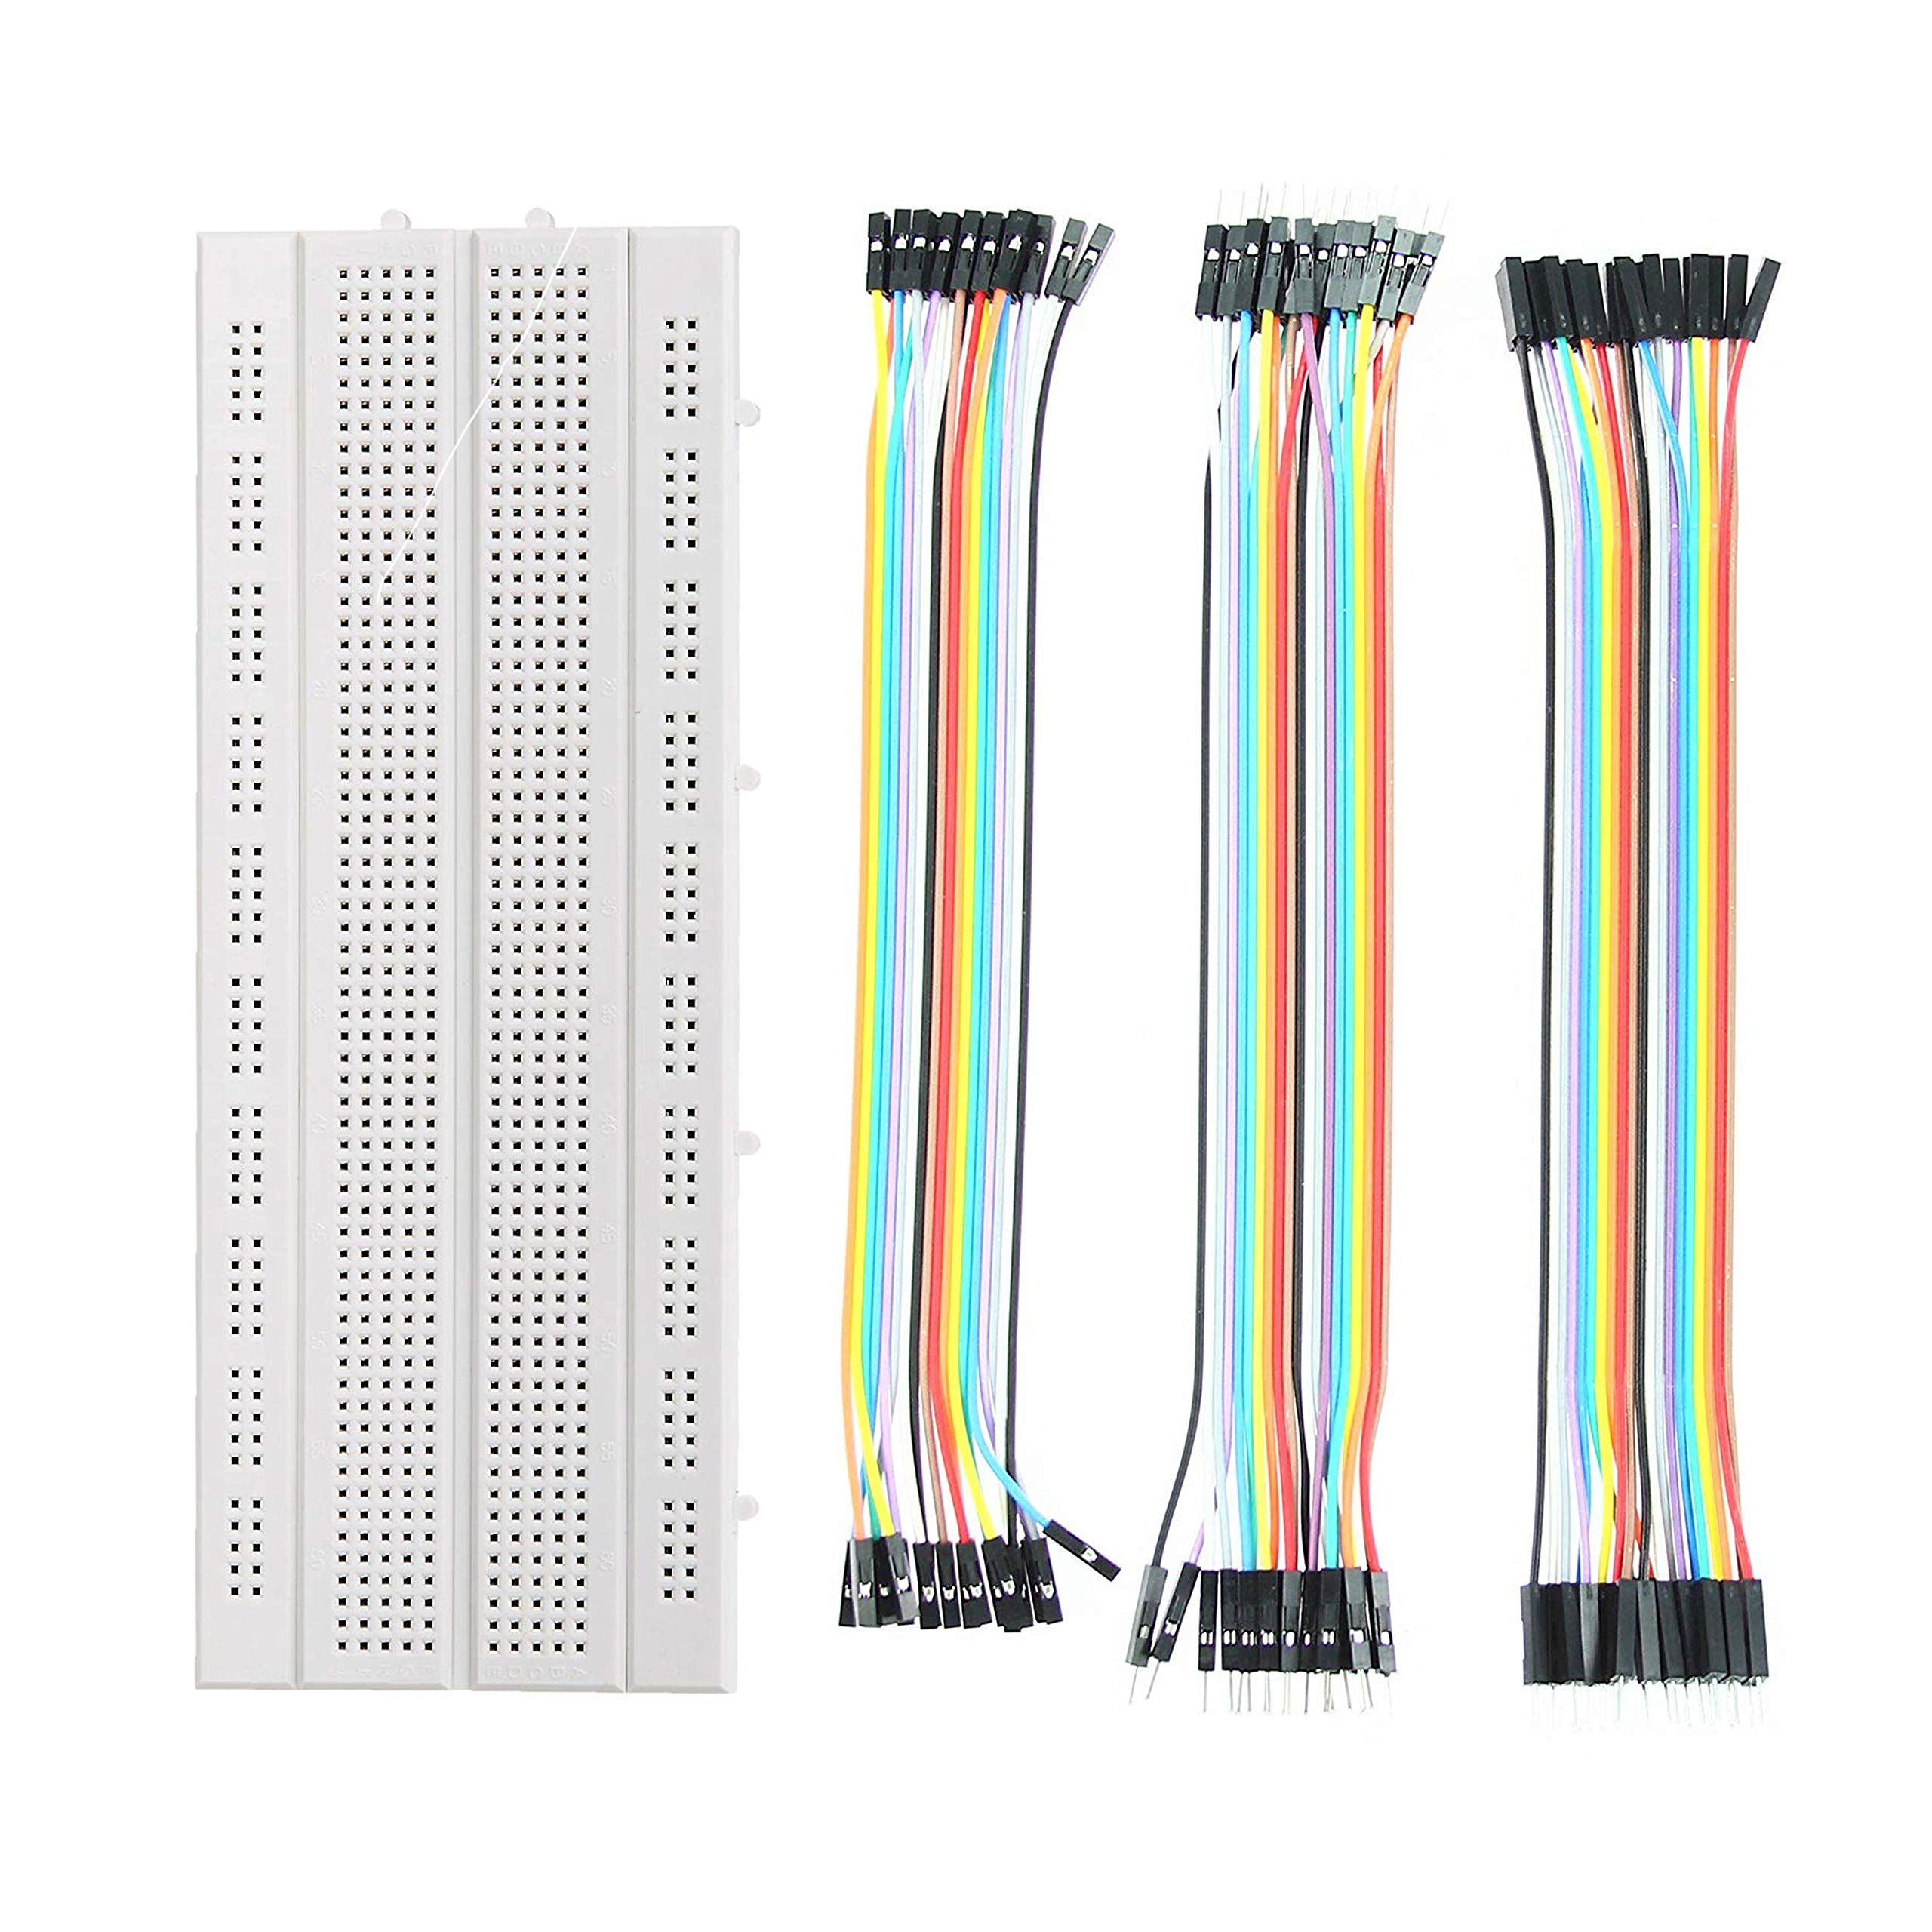 ApTechDeals Breadboard 840 point with jumper wires Set (20+20+20) (B07PMK8CMG) Amazon Price History, Amazon Price Tracker